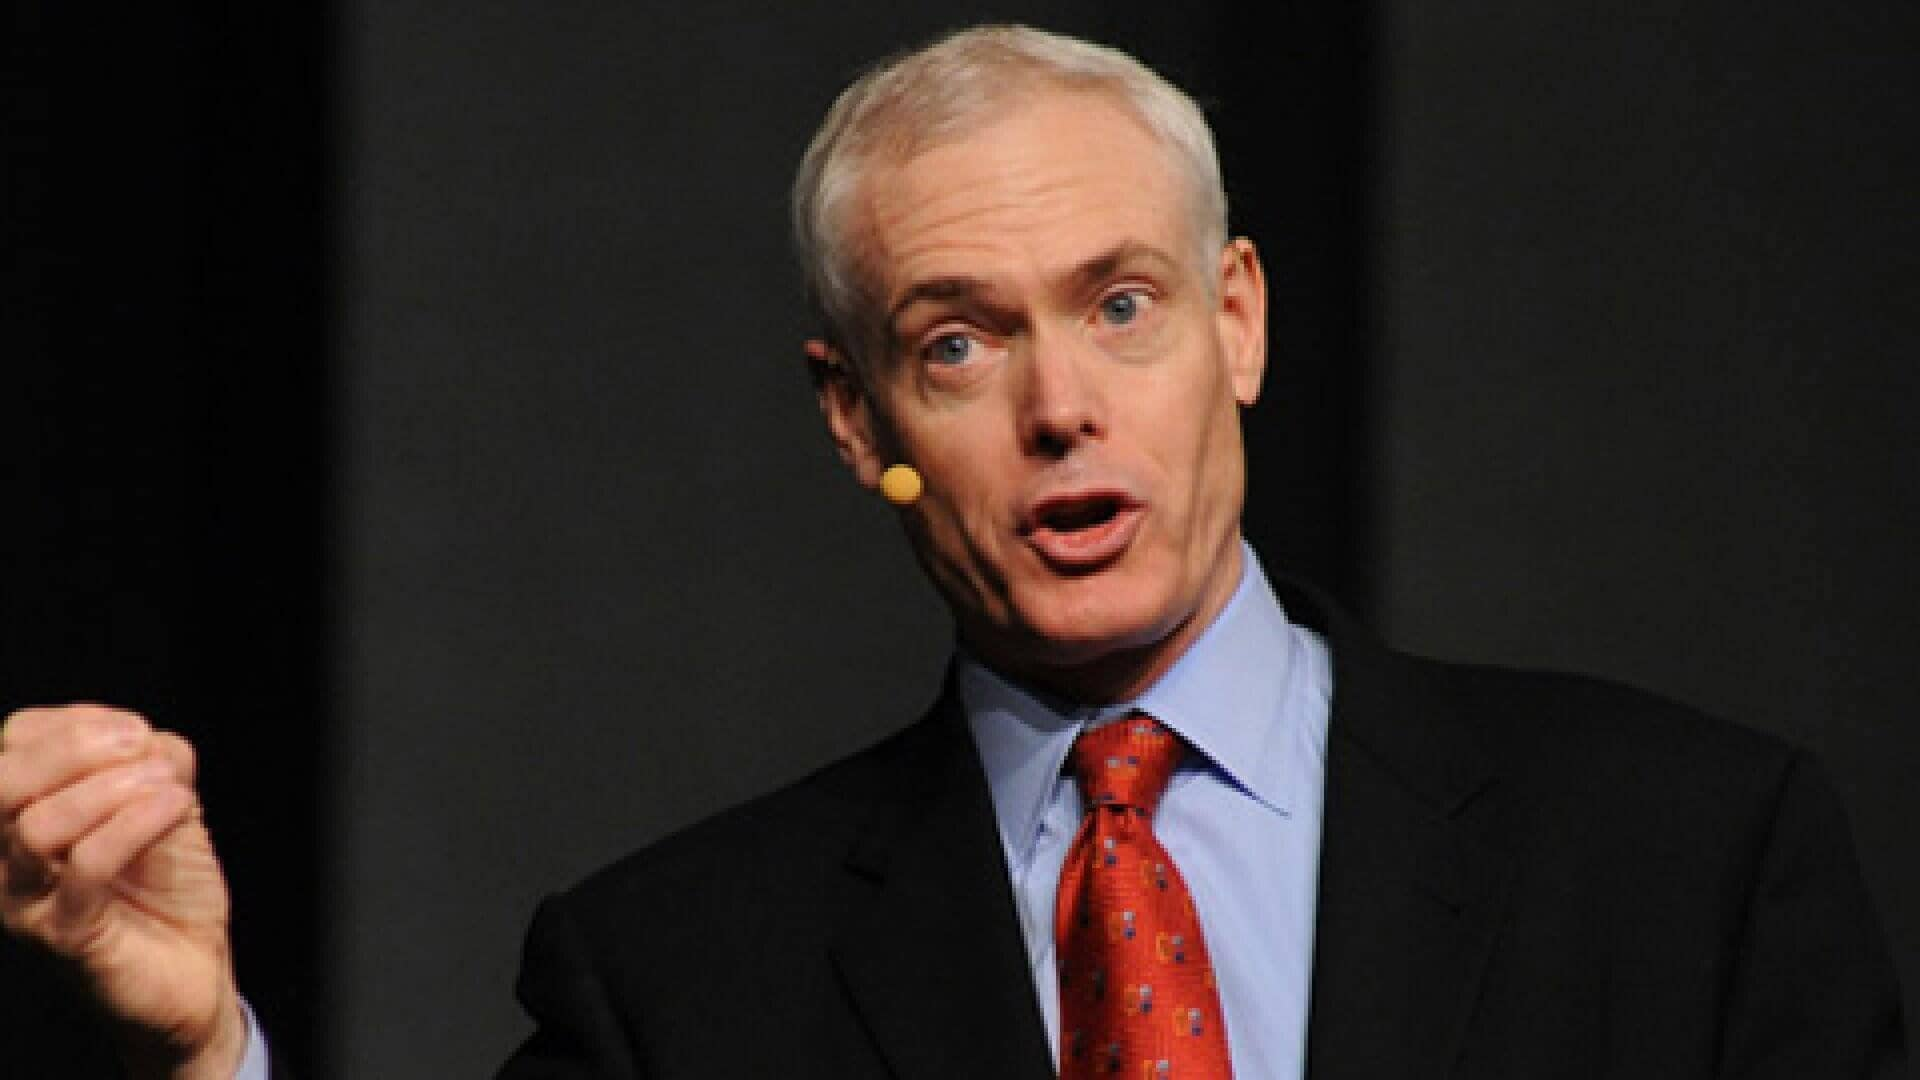 Learning from Thought Leaders like Jim collins on Leaderclasses.